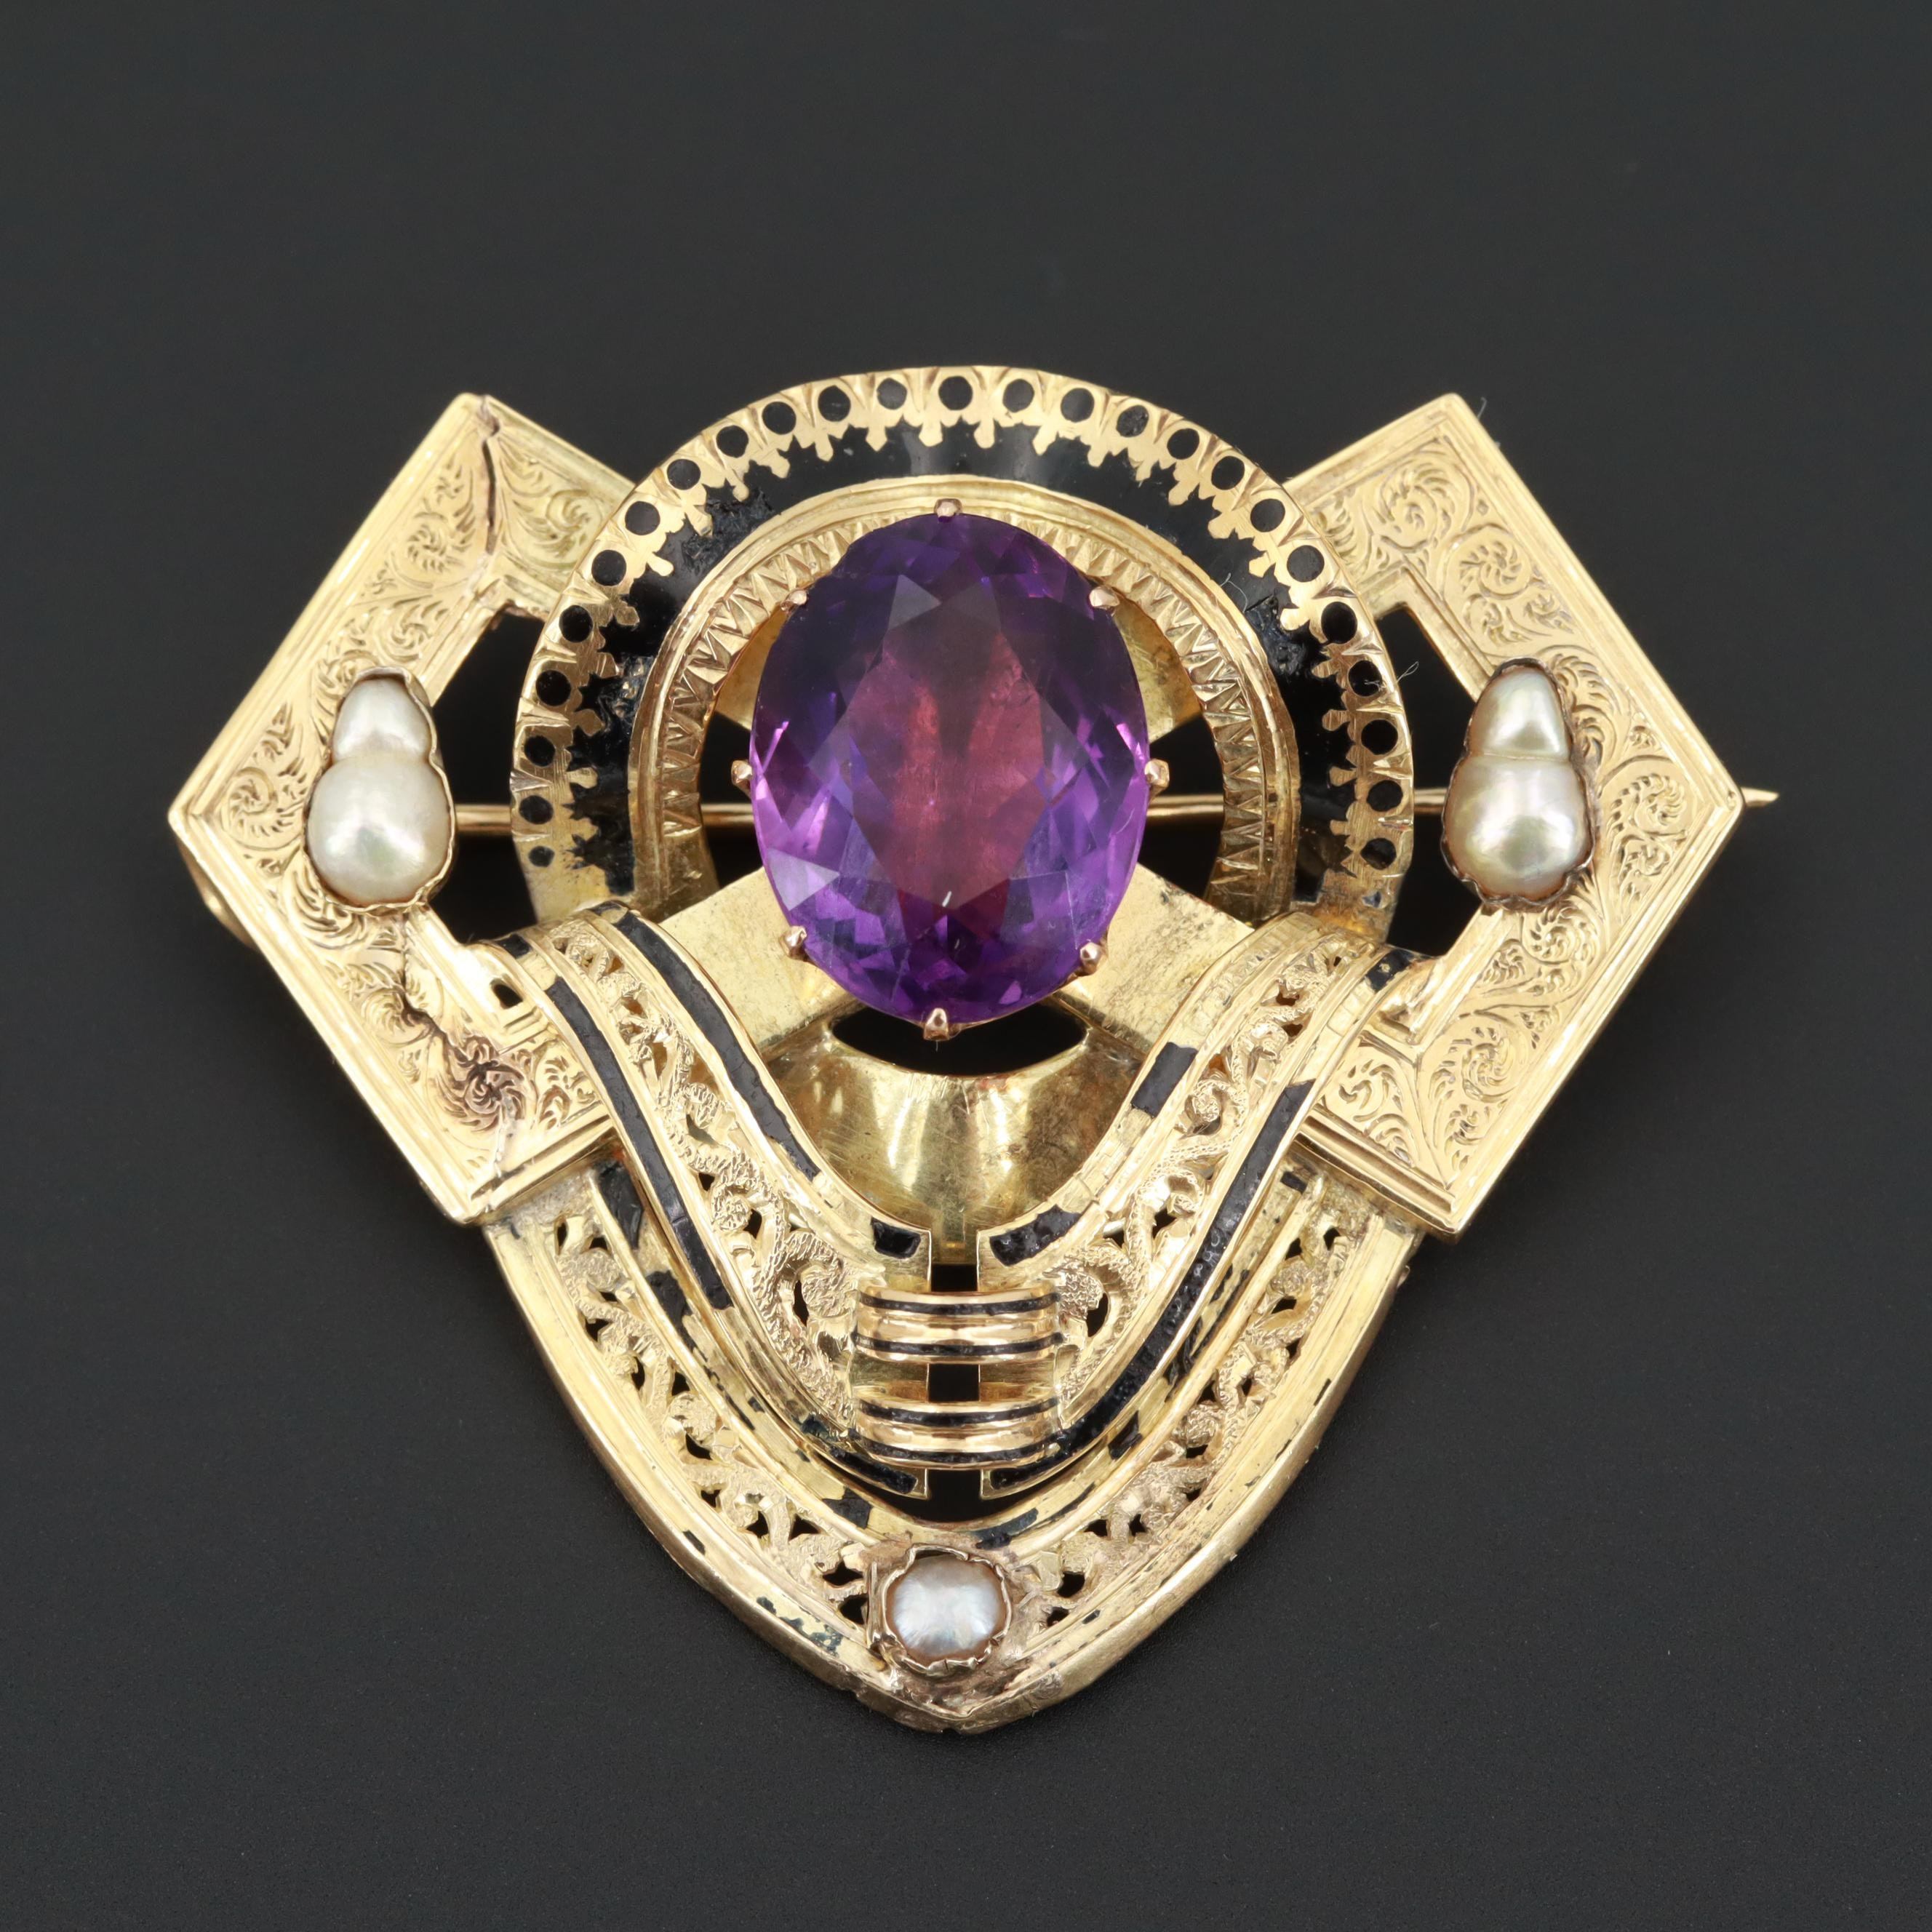 Mid-Victorian 14K Yellow Gold Amethyst, Seed Pearl and Enamel Brooch